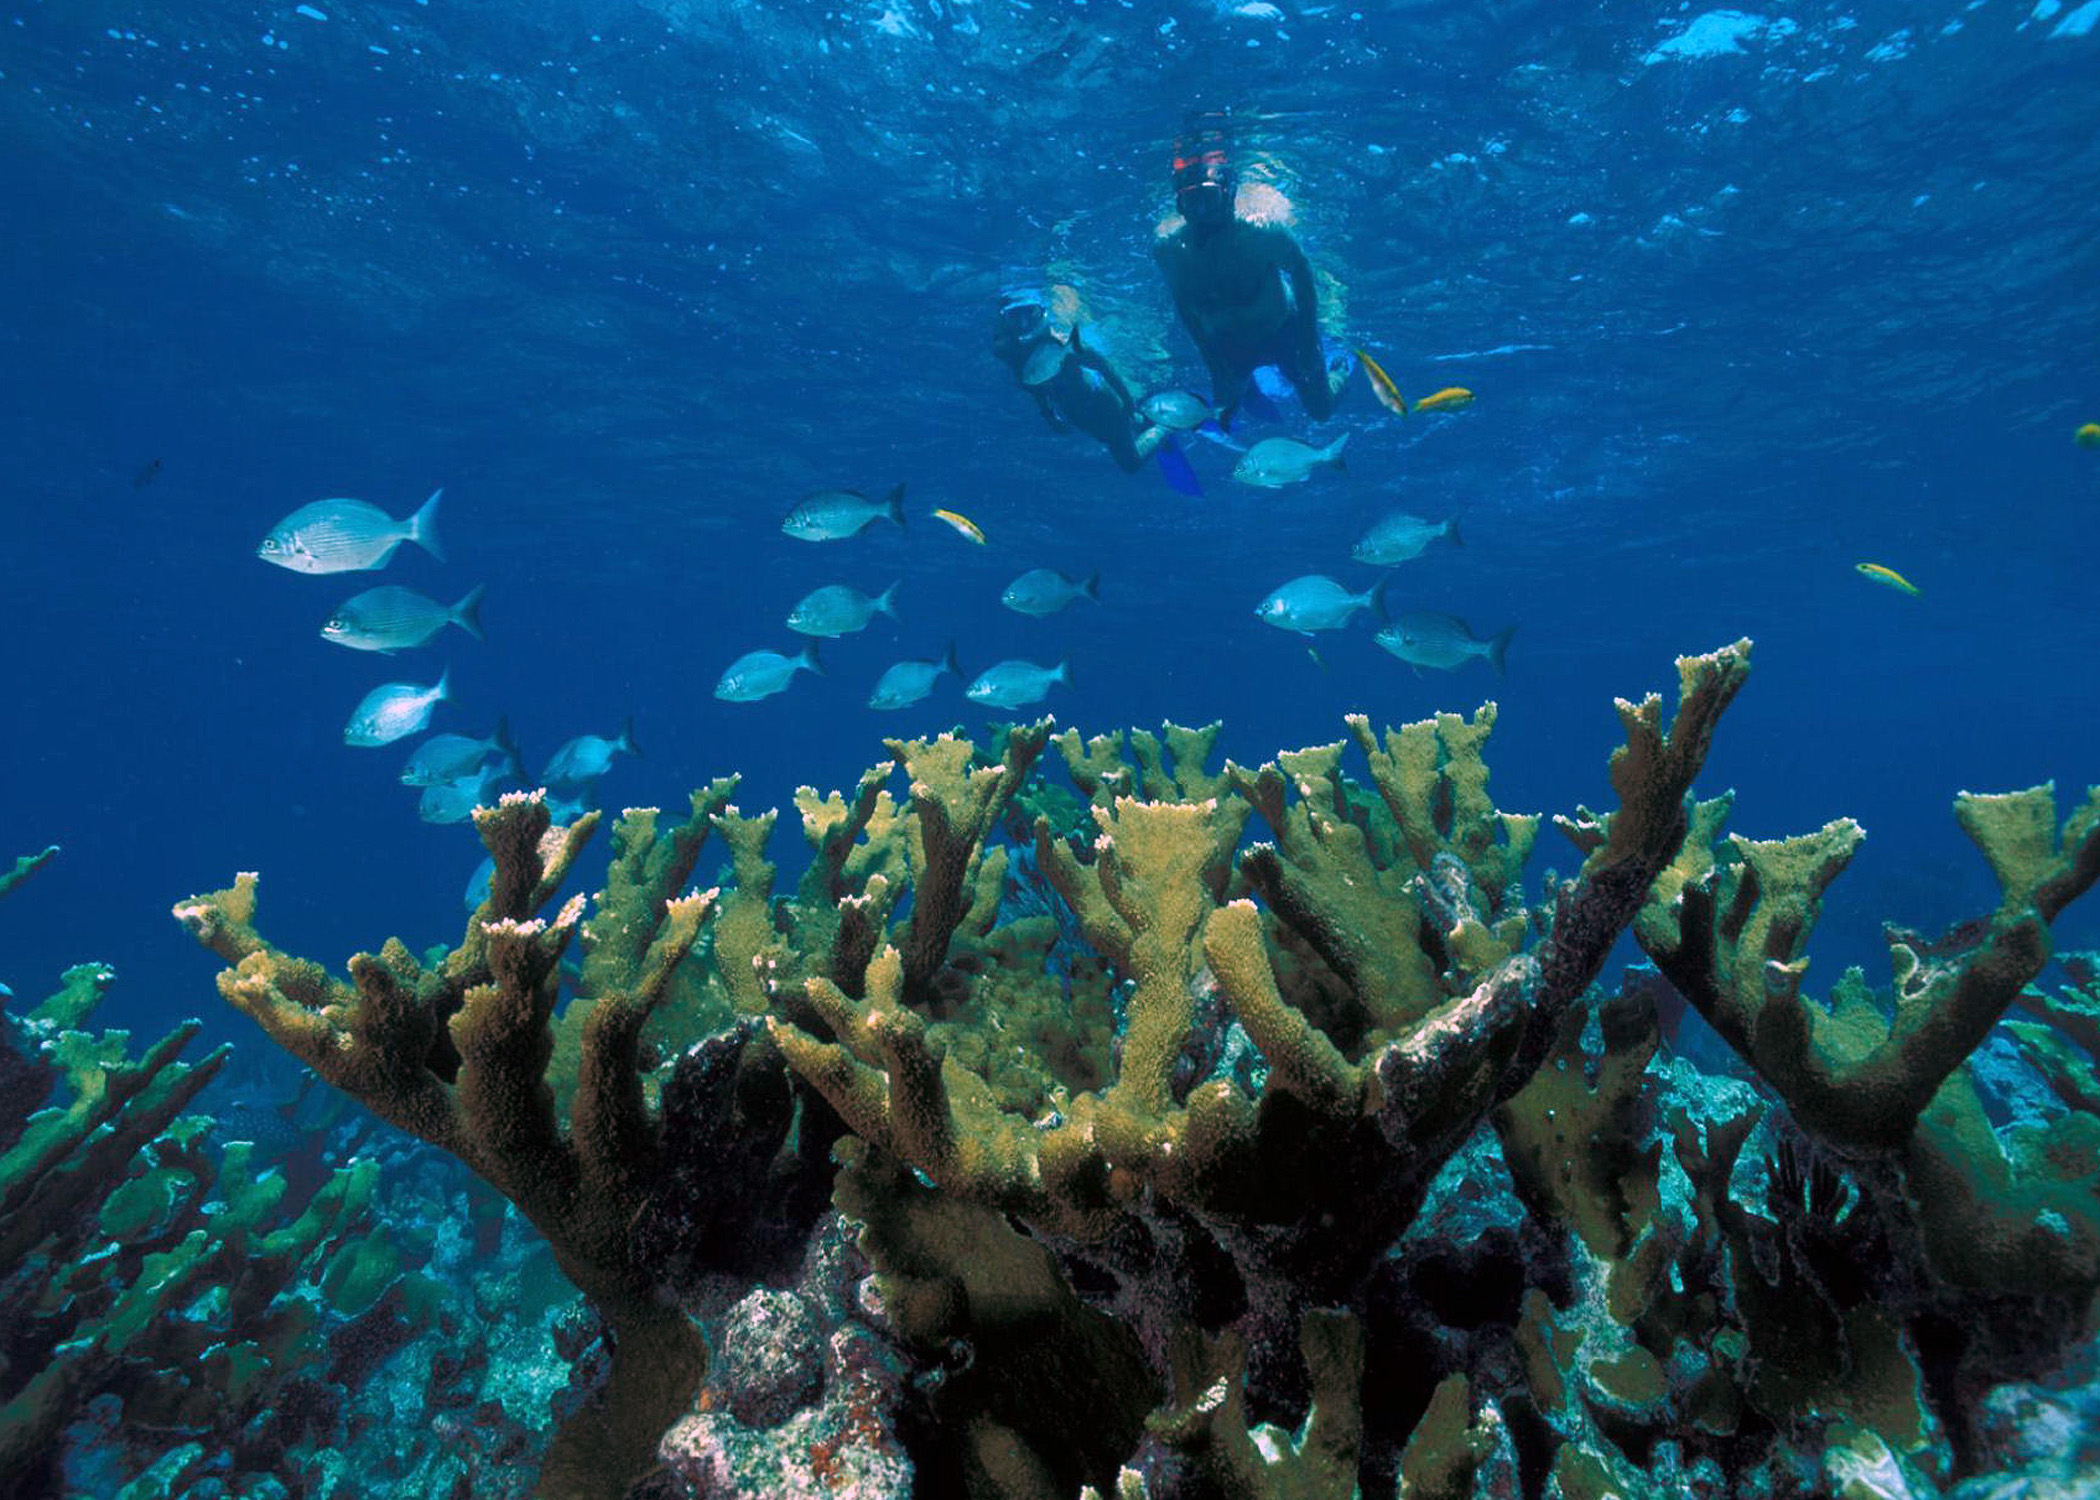 Scuba dive the US Virgin Islands